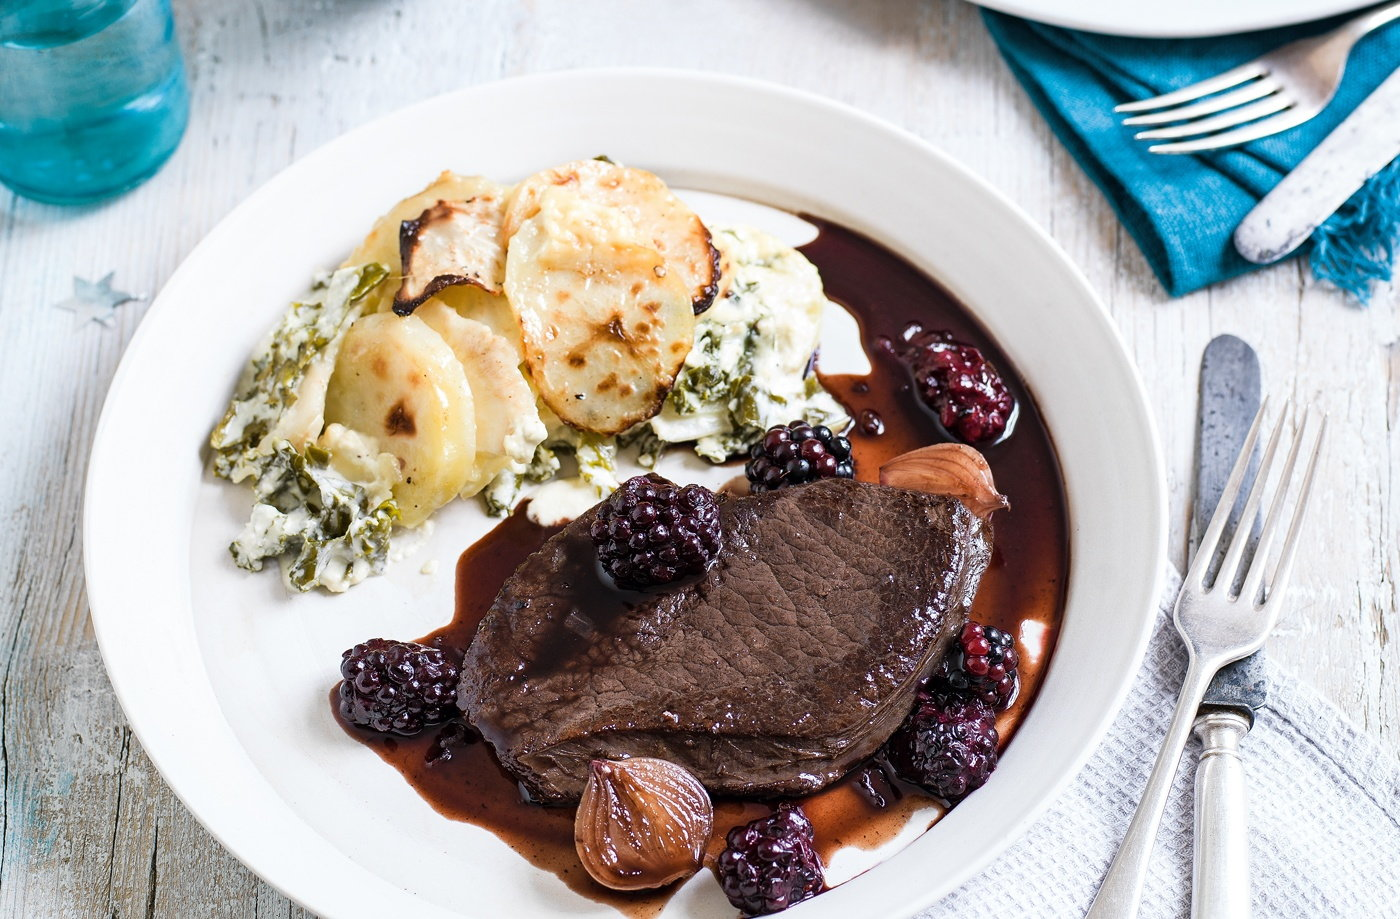 Venison steaks with sloe gin and blackberry sauce recipe